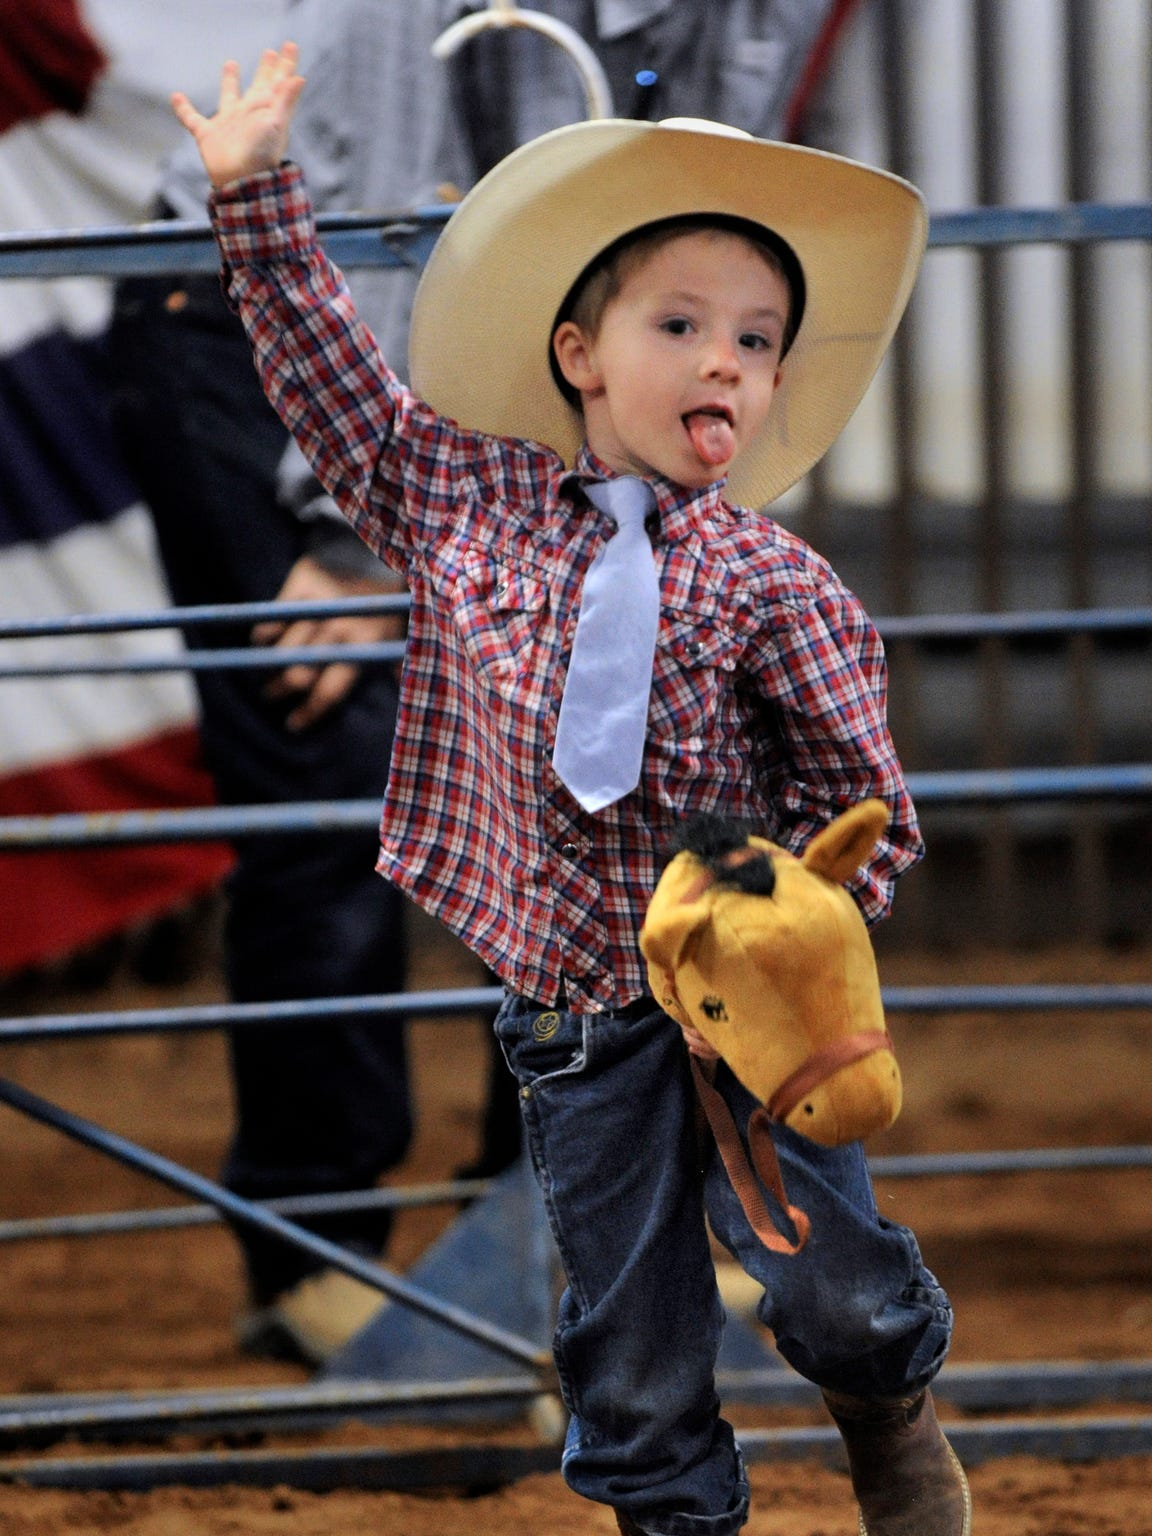 A youngster rides a fiercely buckin' bronc during the Stickhorse Rodeo at WHC.